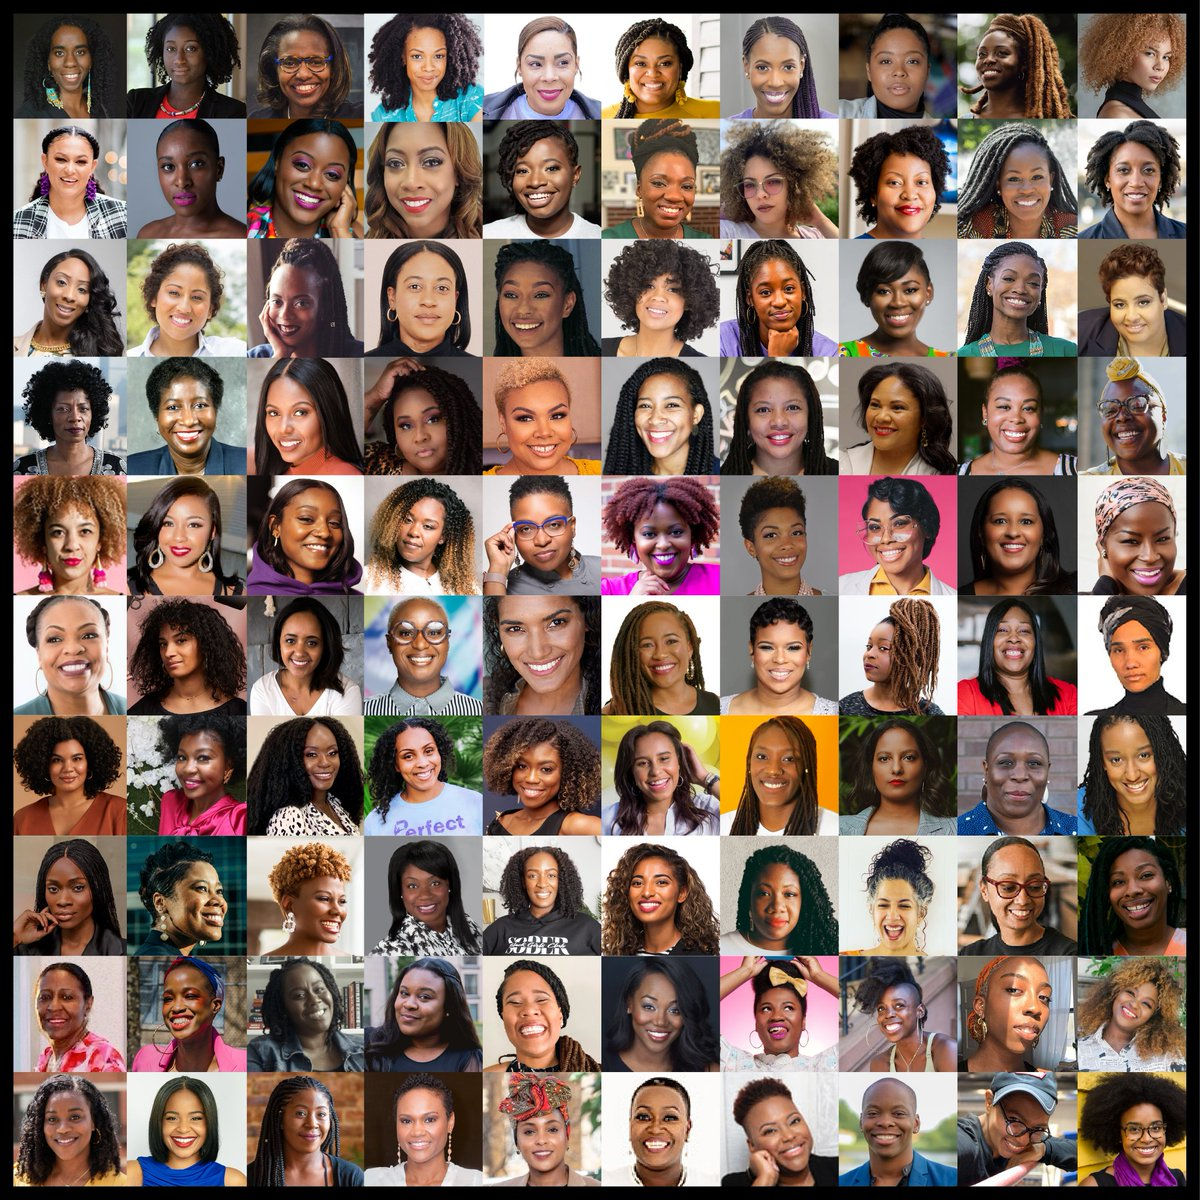 Meet the women of #Amex100for100. Black women start 763 new businesses every day.* To help jump start their businesses, we're backing 100 of these women w/ $25K in grants, resources & mentorship. Learn more:  *2019 State of Women-owned Biz Report by Amex